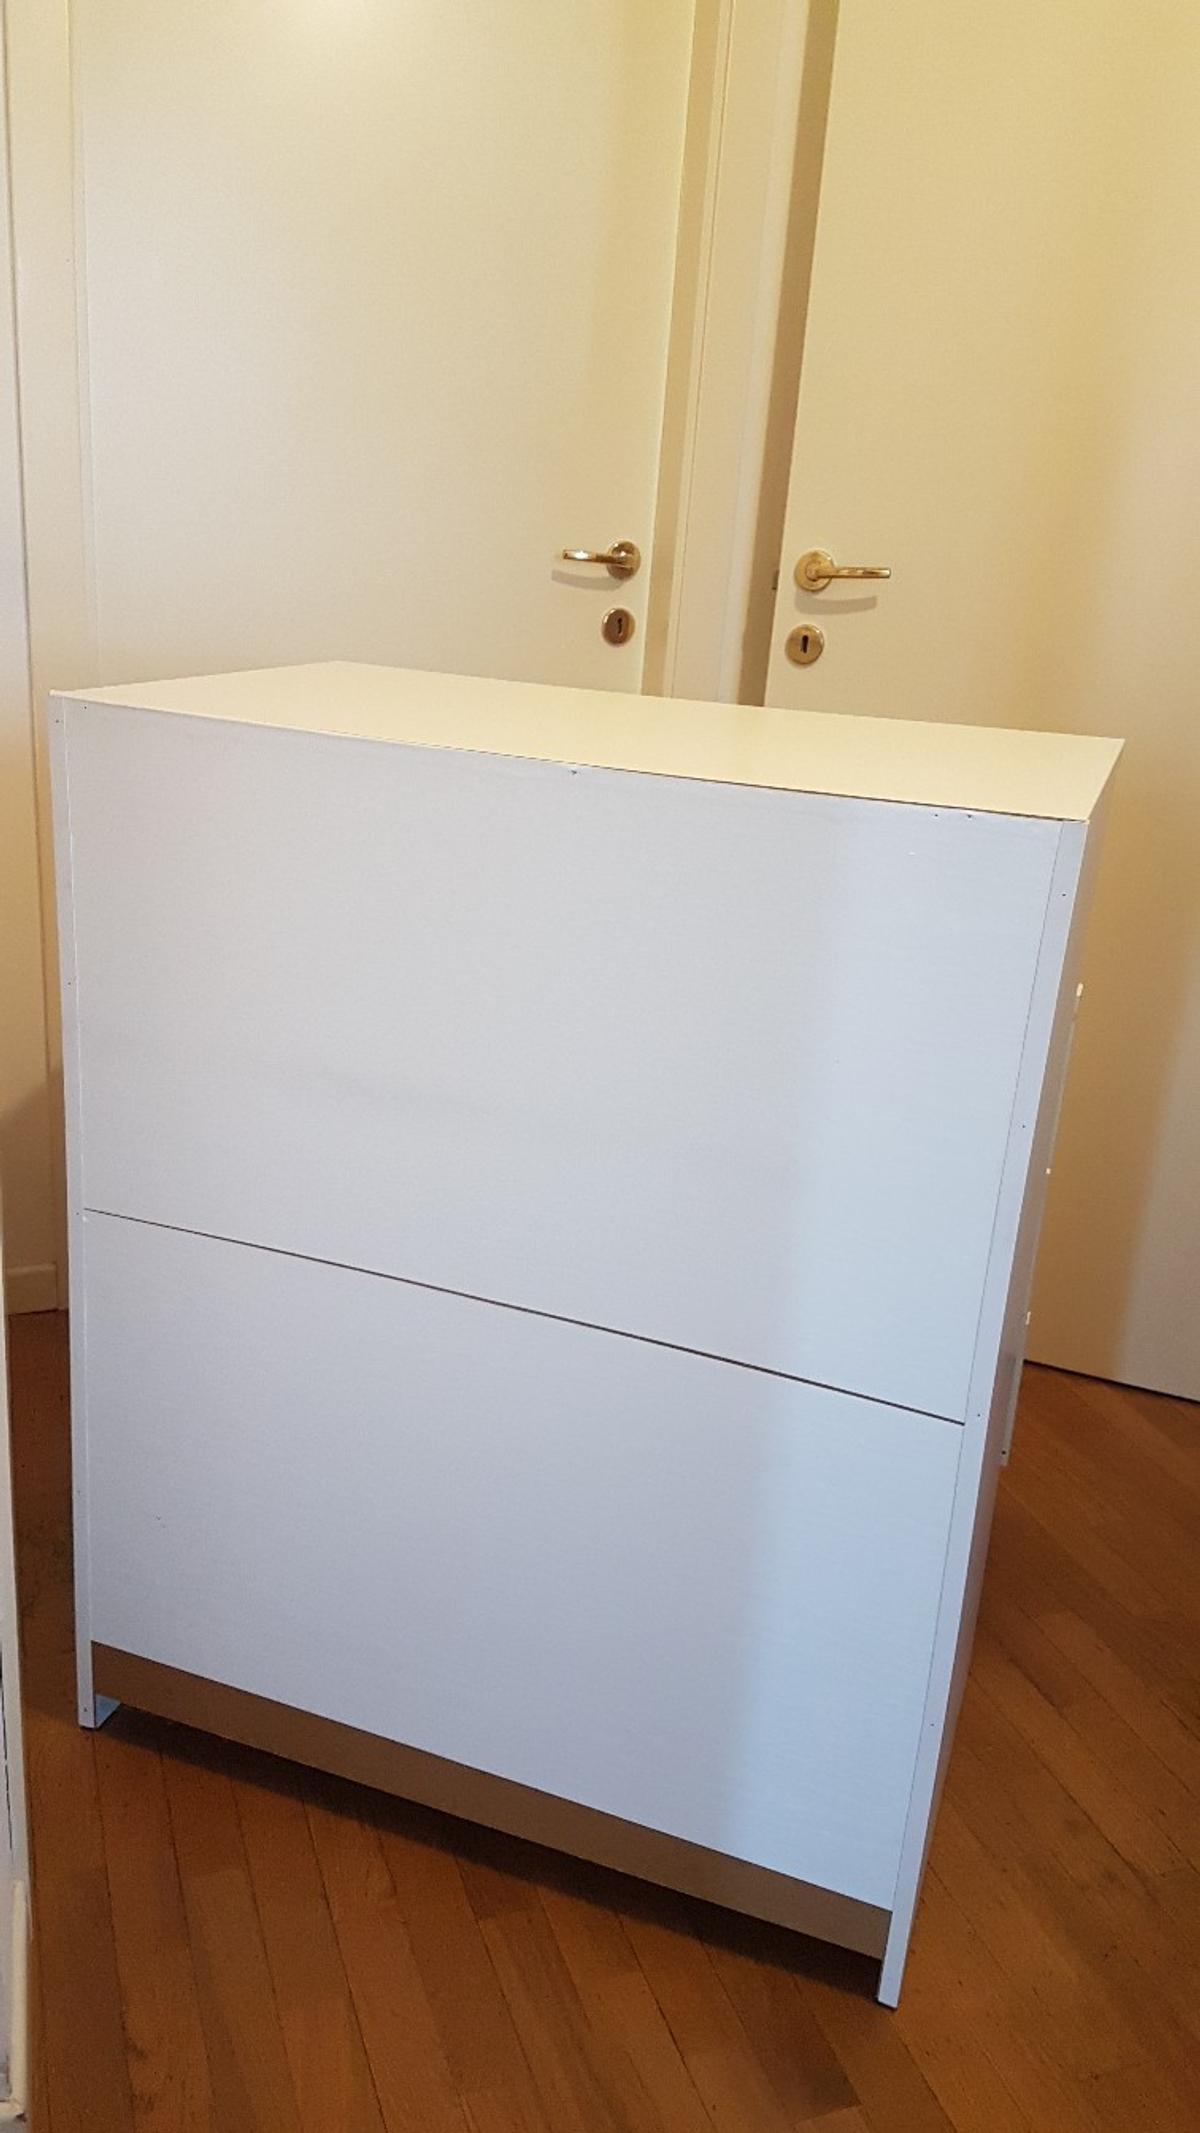 Malm Cassettiera 4 Cassetti.Malm Cassettiera Ikea 4 Cassetti In 20021 Bollate For 35 00 For